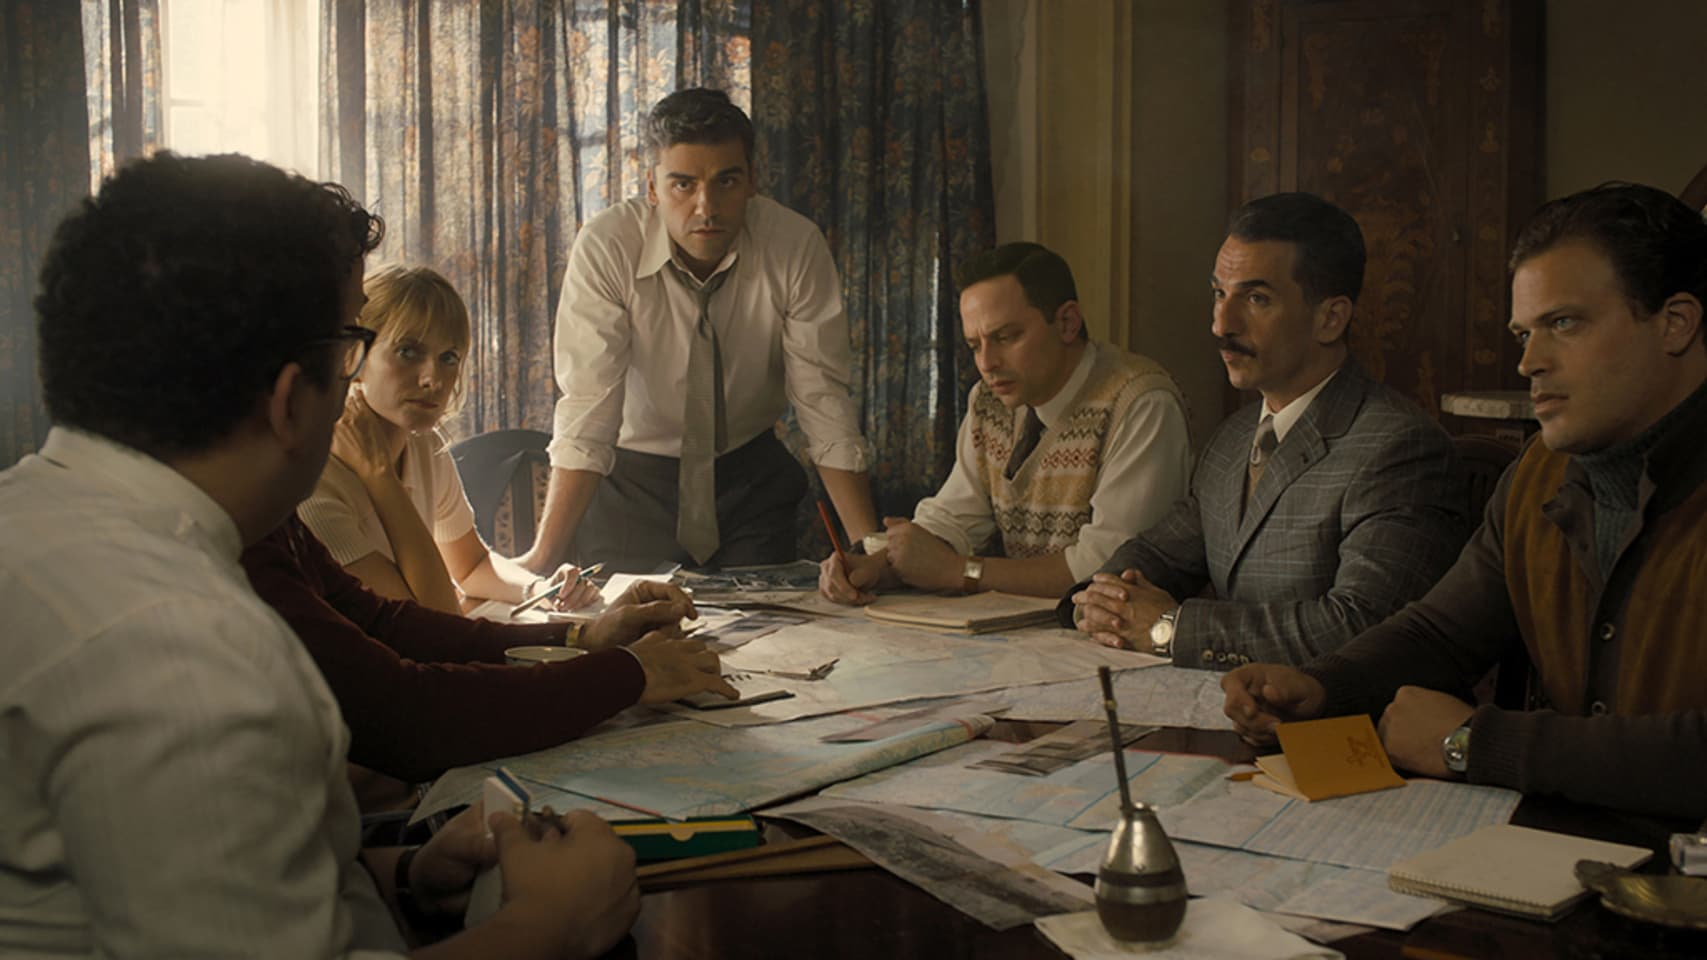 Operation Finale - Movie Times, Tickets & Theatres